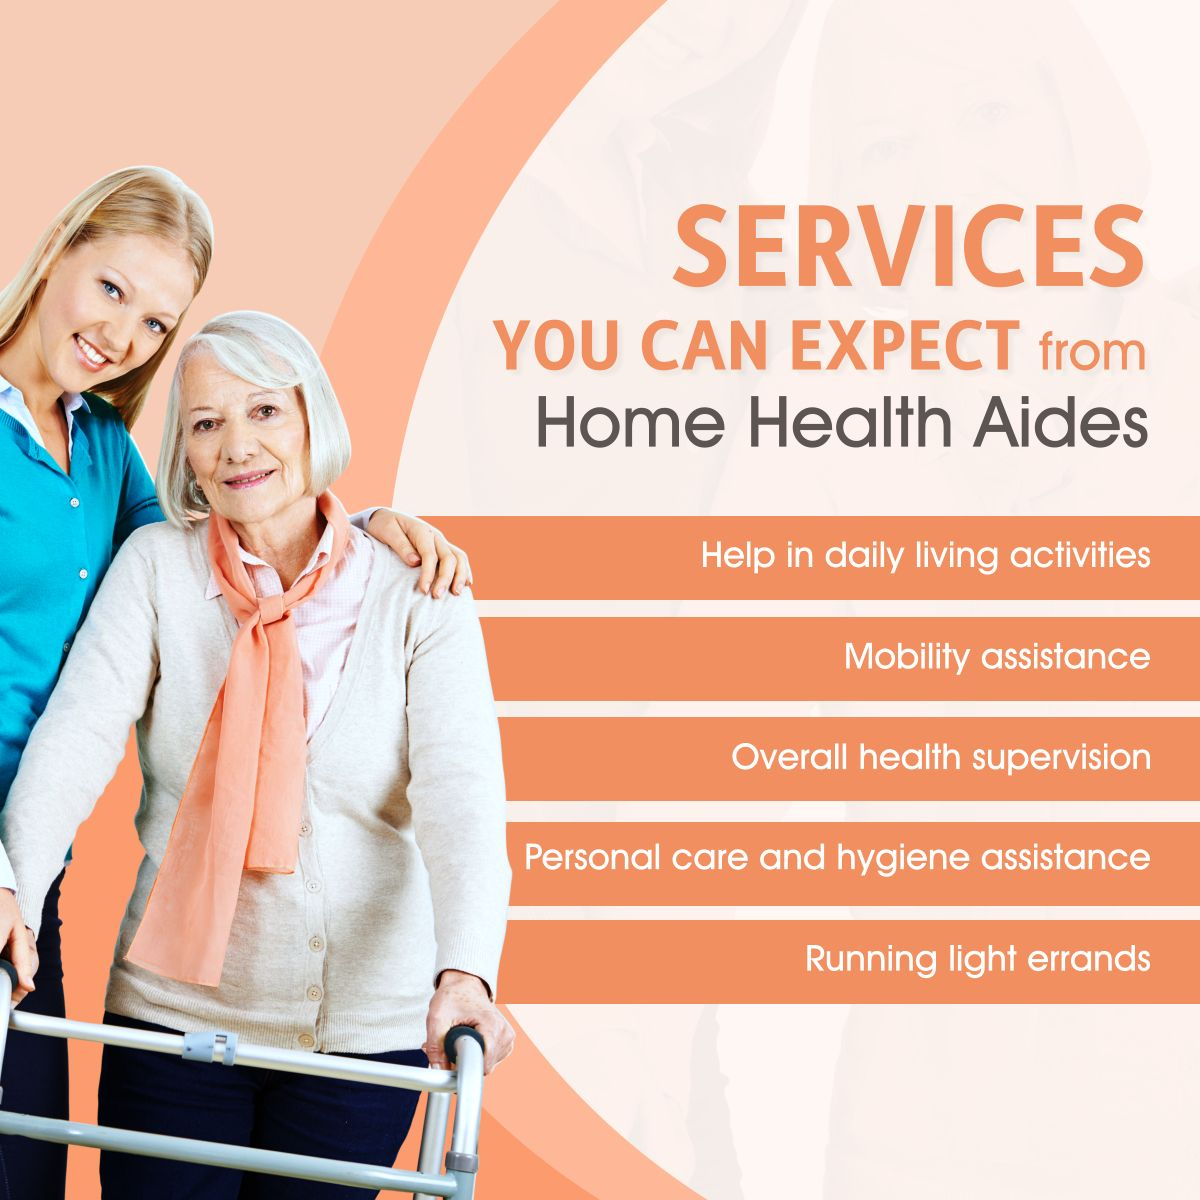 Services You Can Expect from Home Health Aides